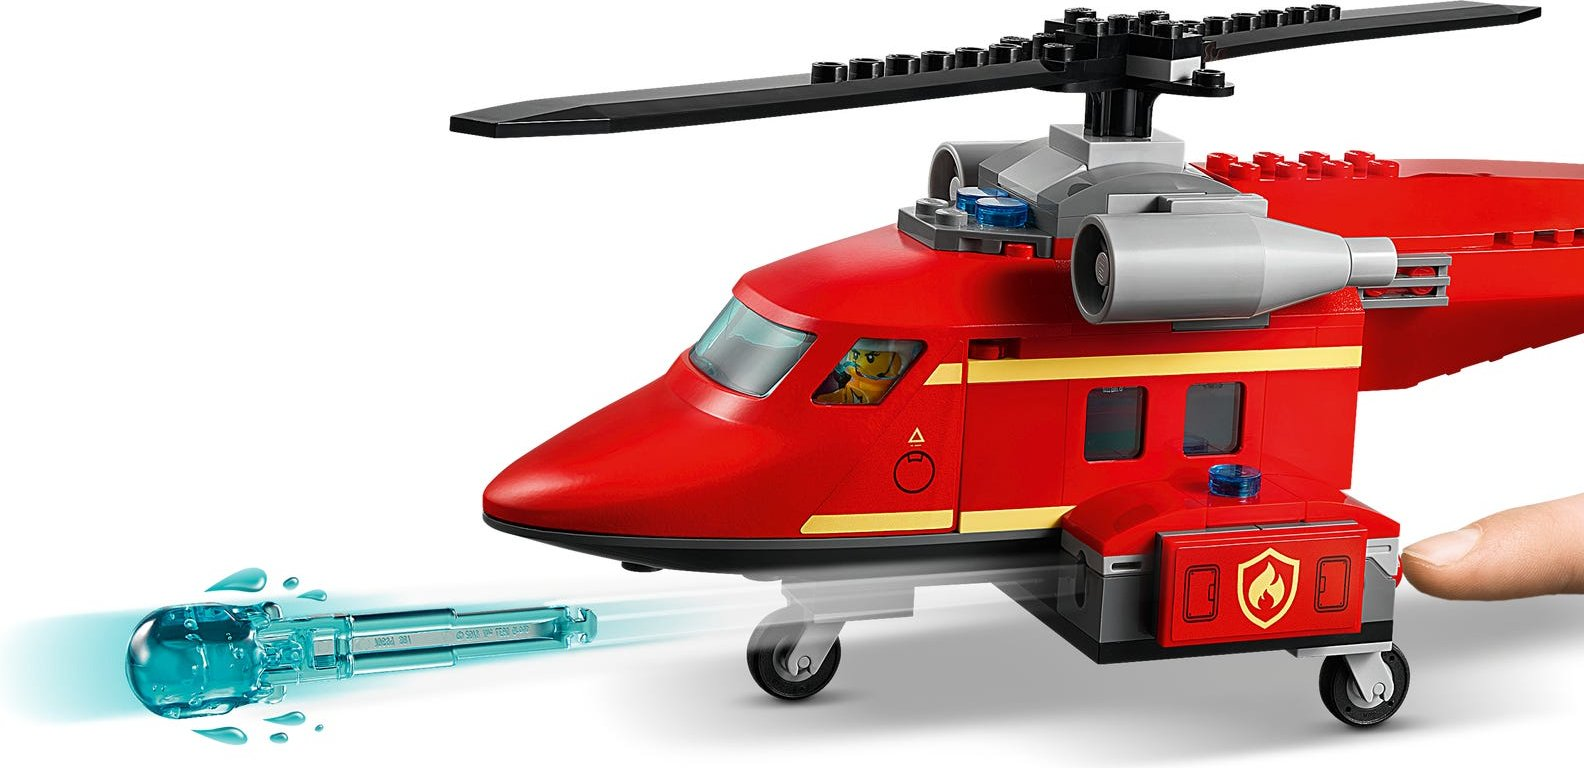 LEGO® City Fire Rescue Helicopter components